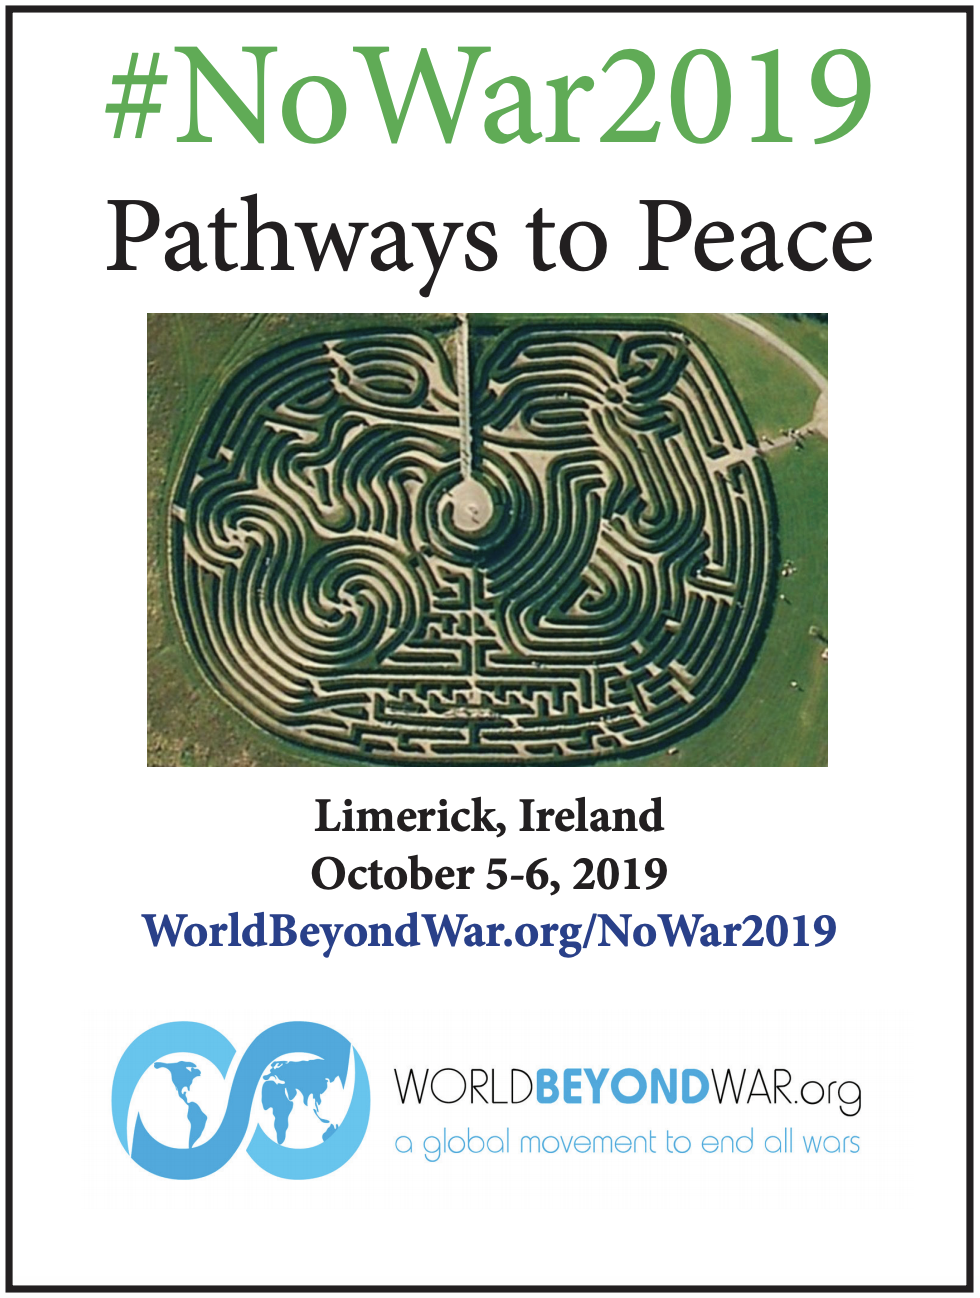 #NoWar2019 Pathways to Peace conference in Limerick, Ireland October 5-6 2019